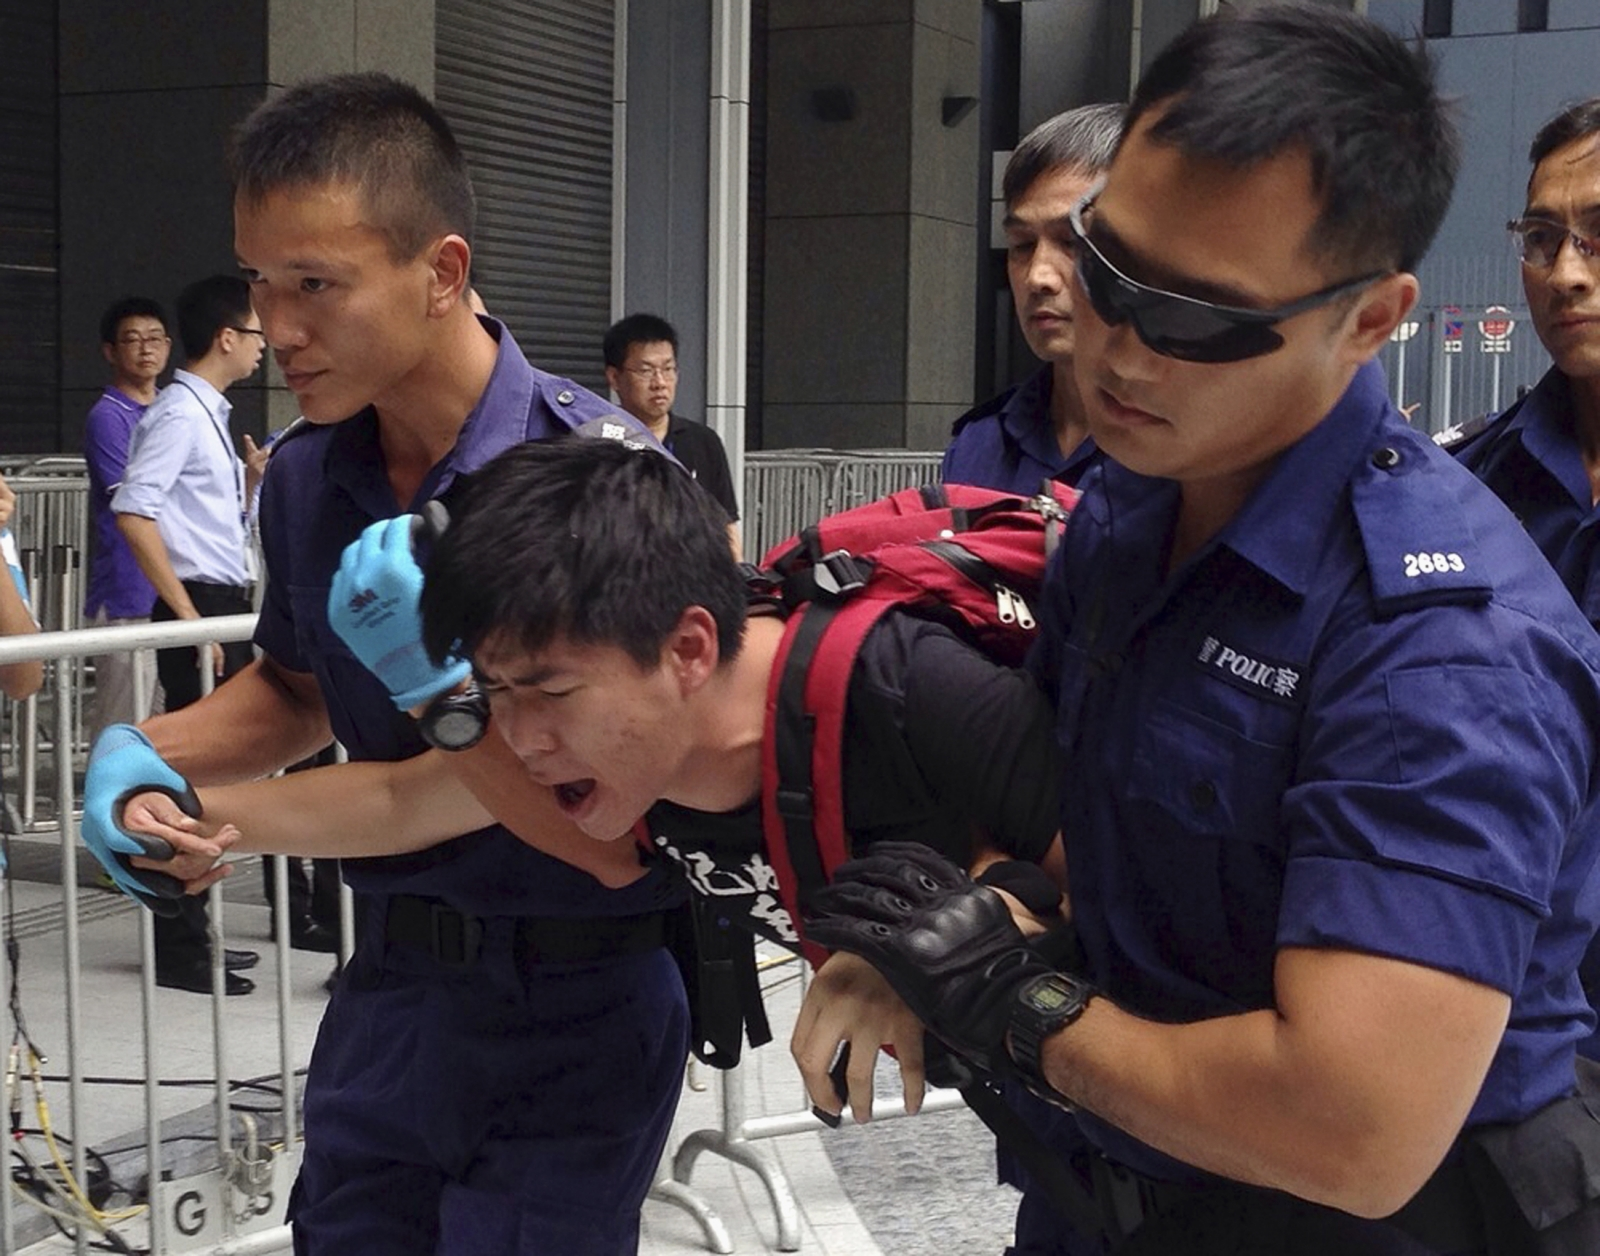 Hong Kong riot police used pepper spray to disperse protesters around government headquarters